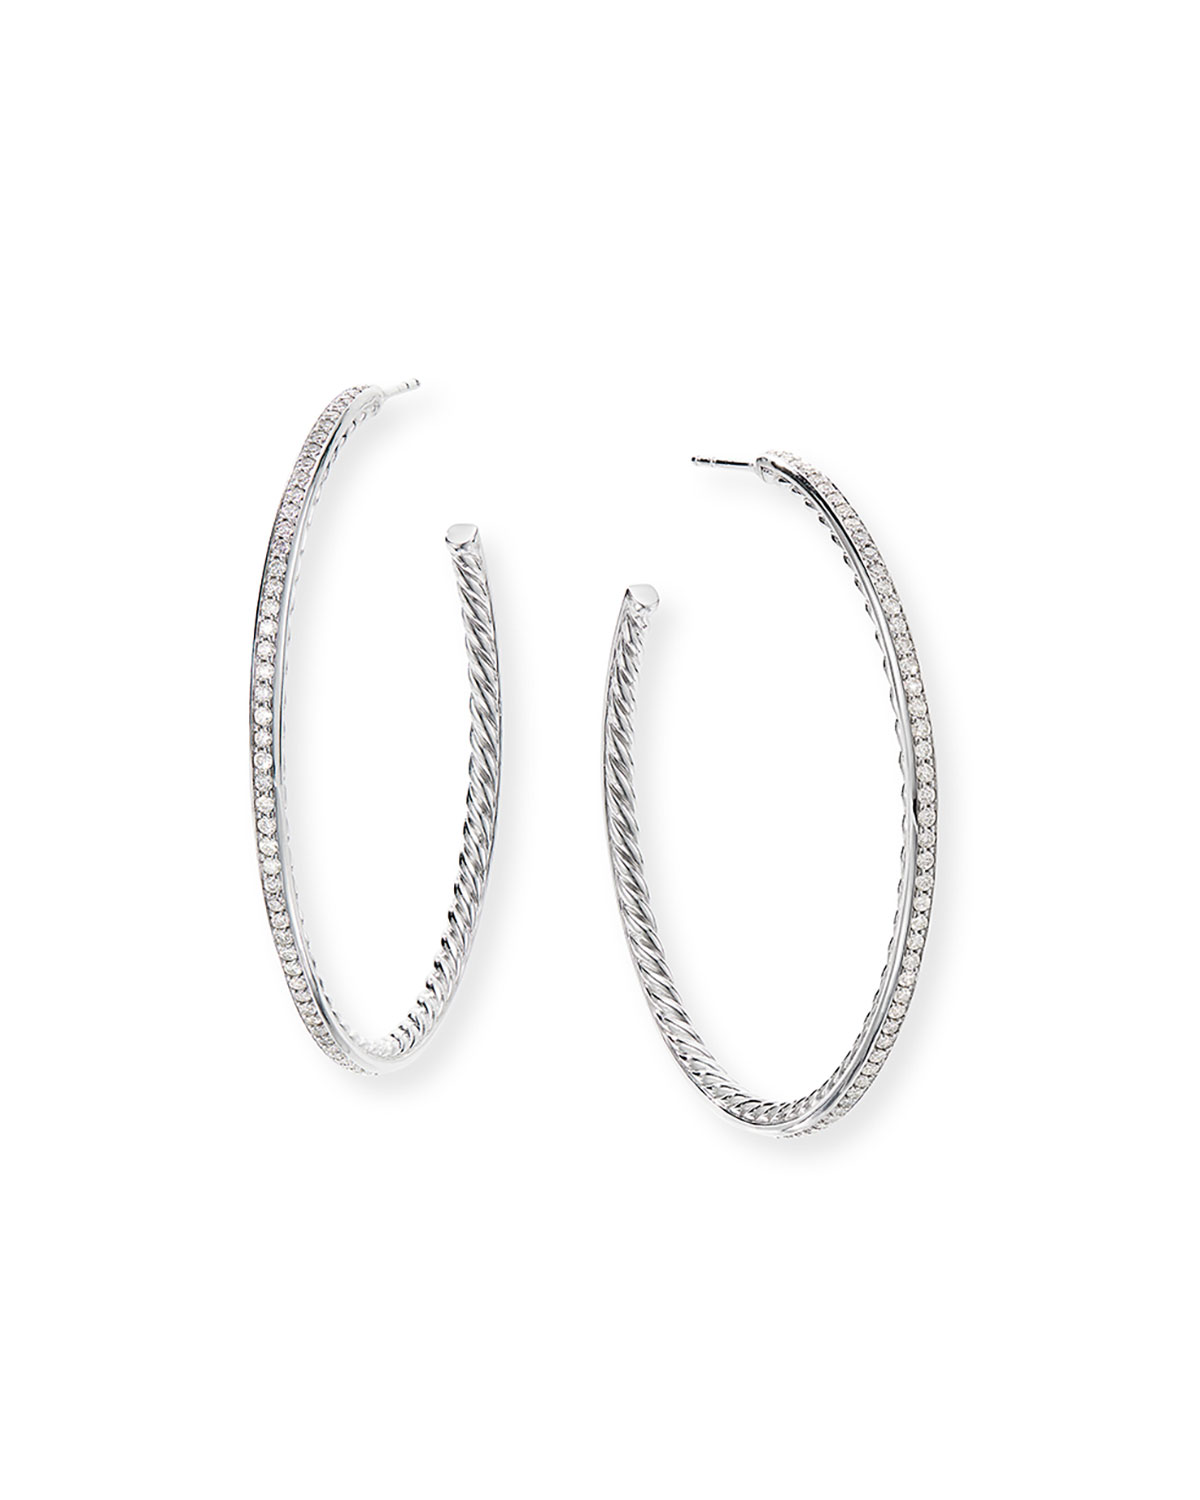 David Yurman Large Hoop Earrings w/ Pave Diamonds